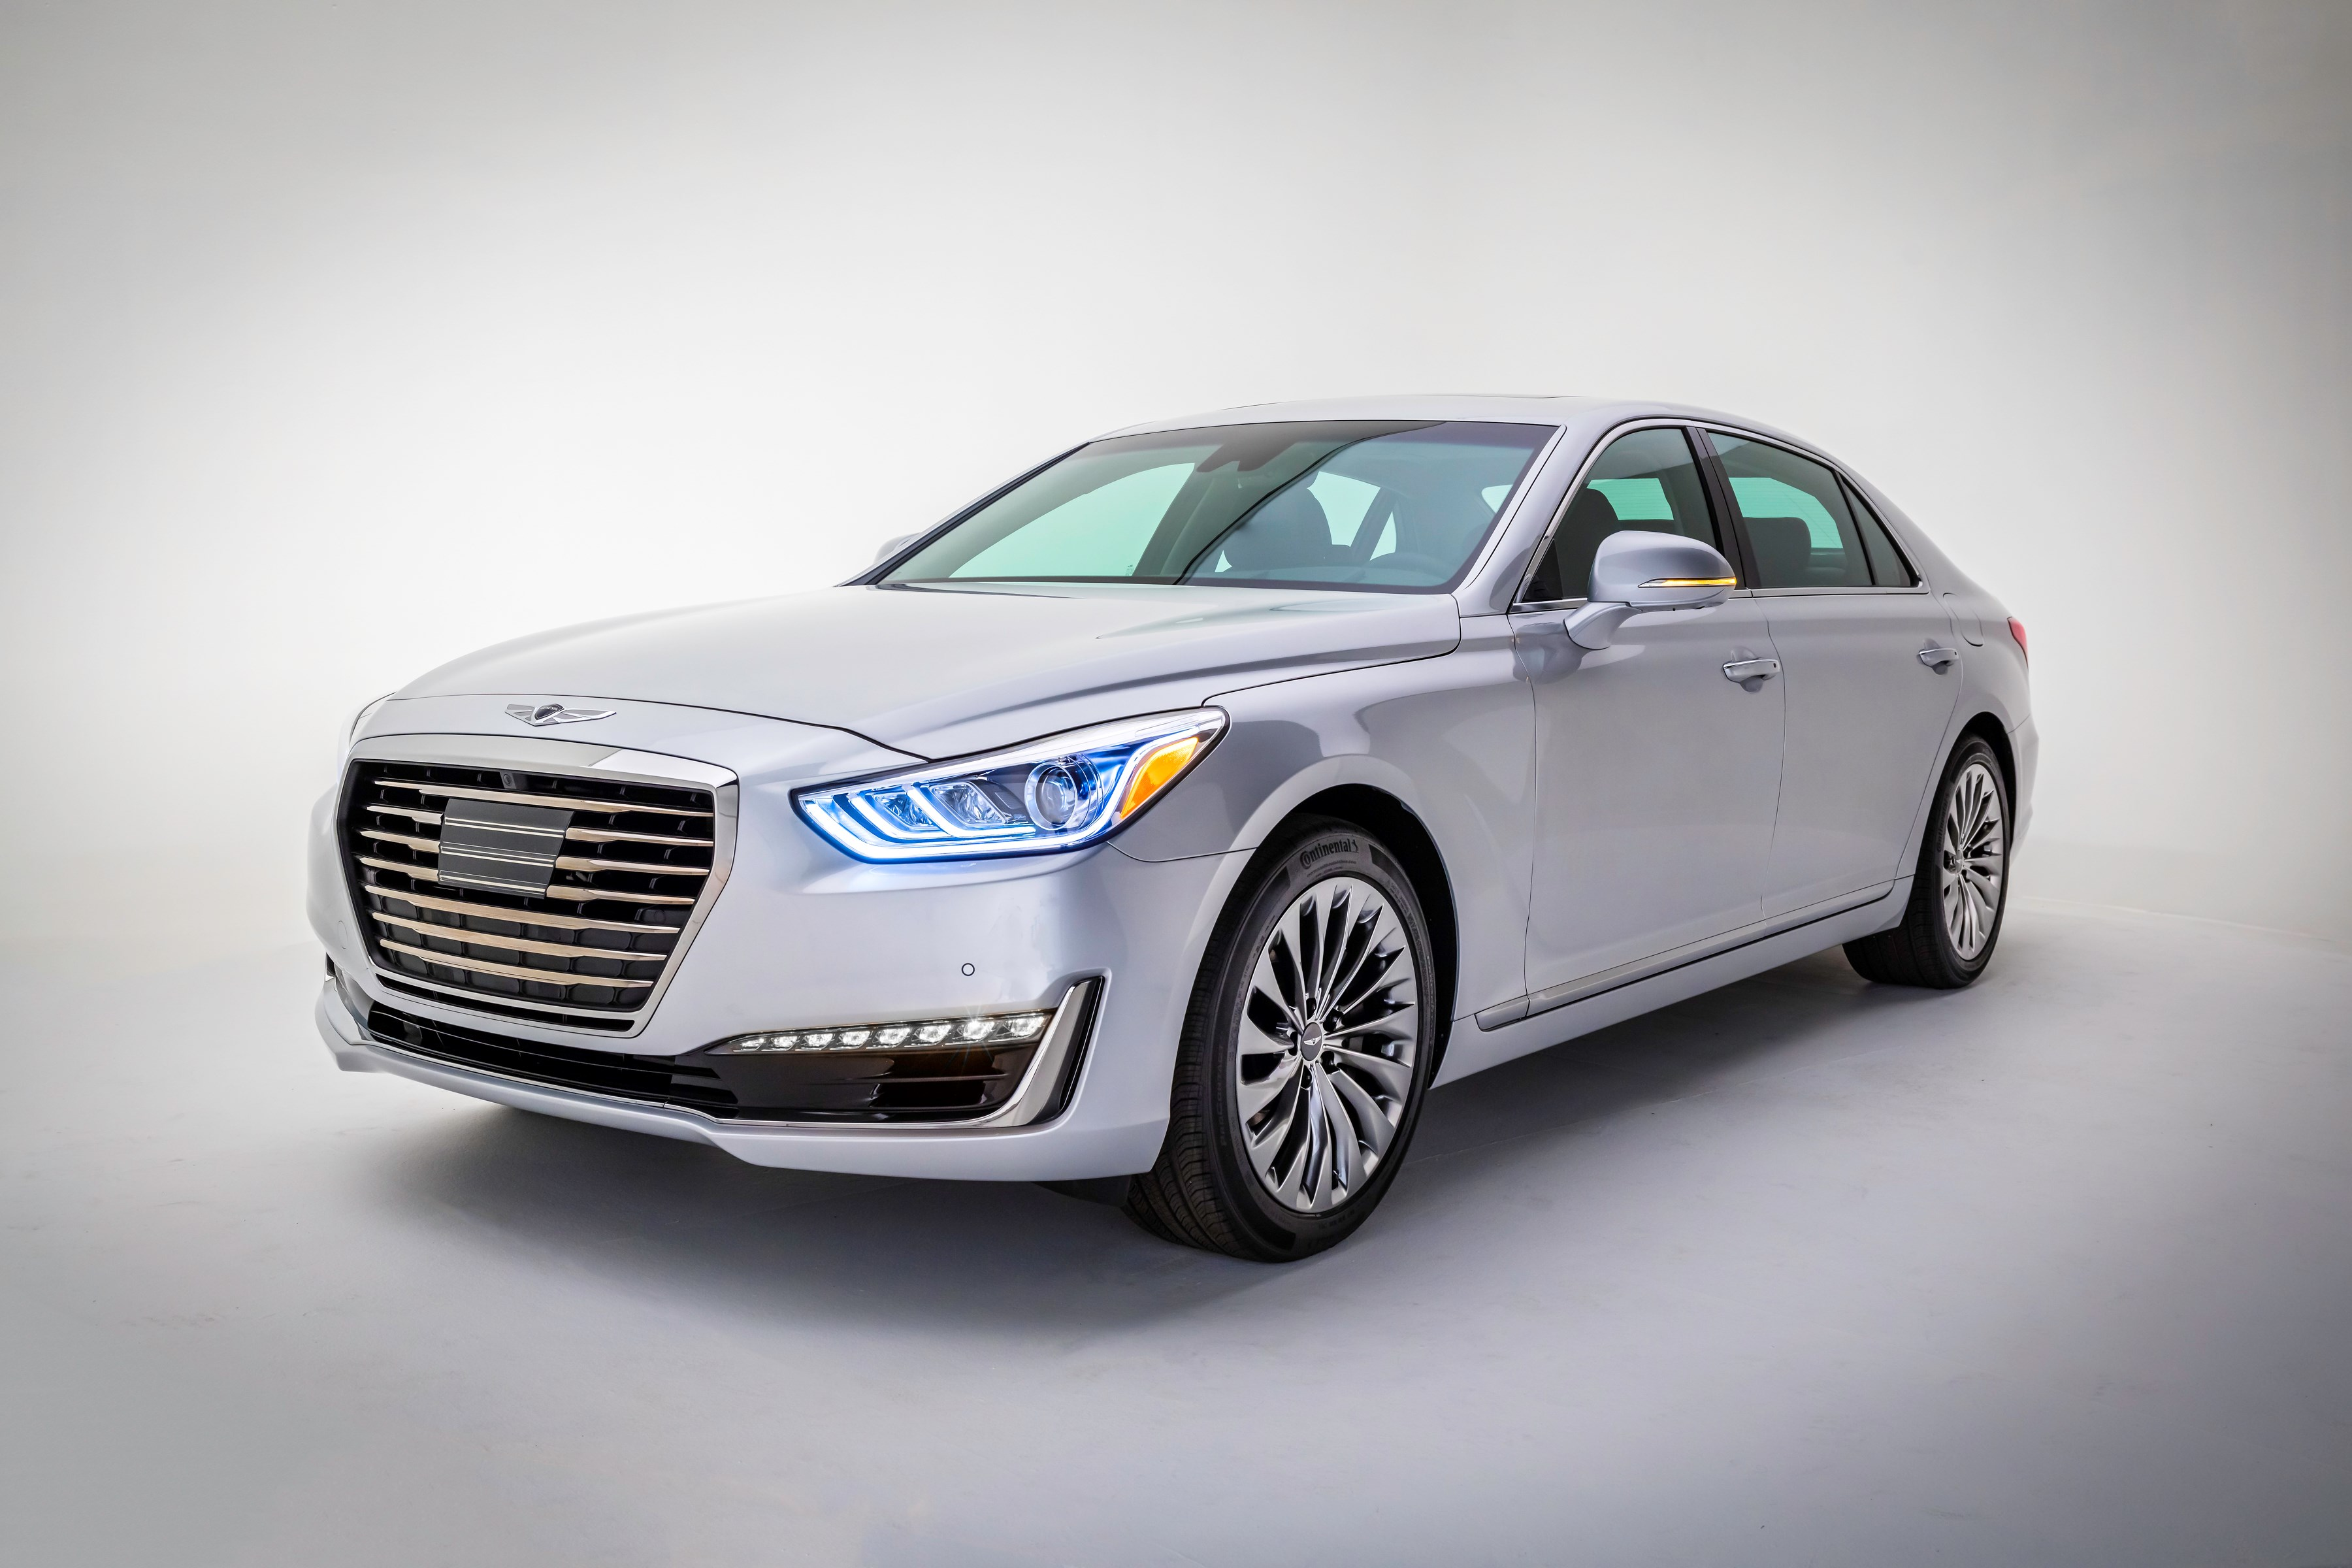 Hyundai Motor's Genesis G90 model is enjoying strong sales, outclassing prominent models of other automakers, such as Lincoln Continental and the Mercedes-Benz S Class, in customer satisfaction.